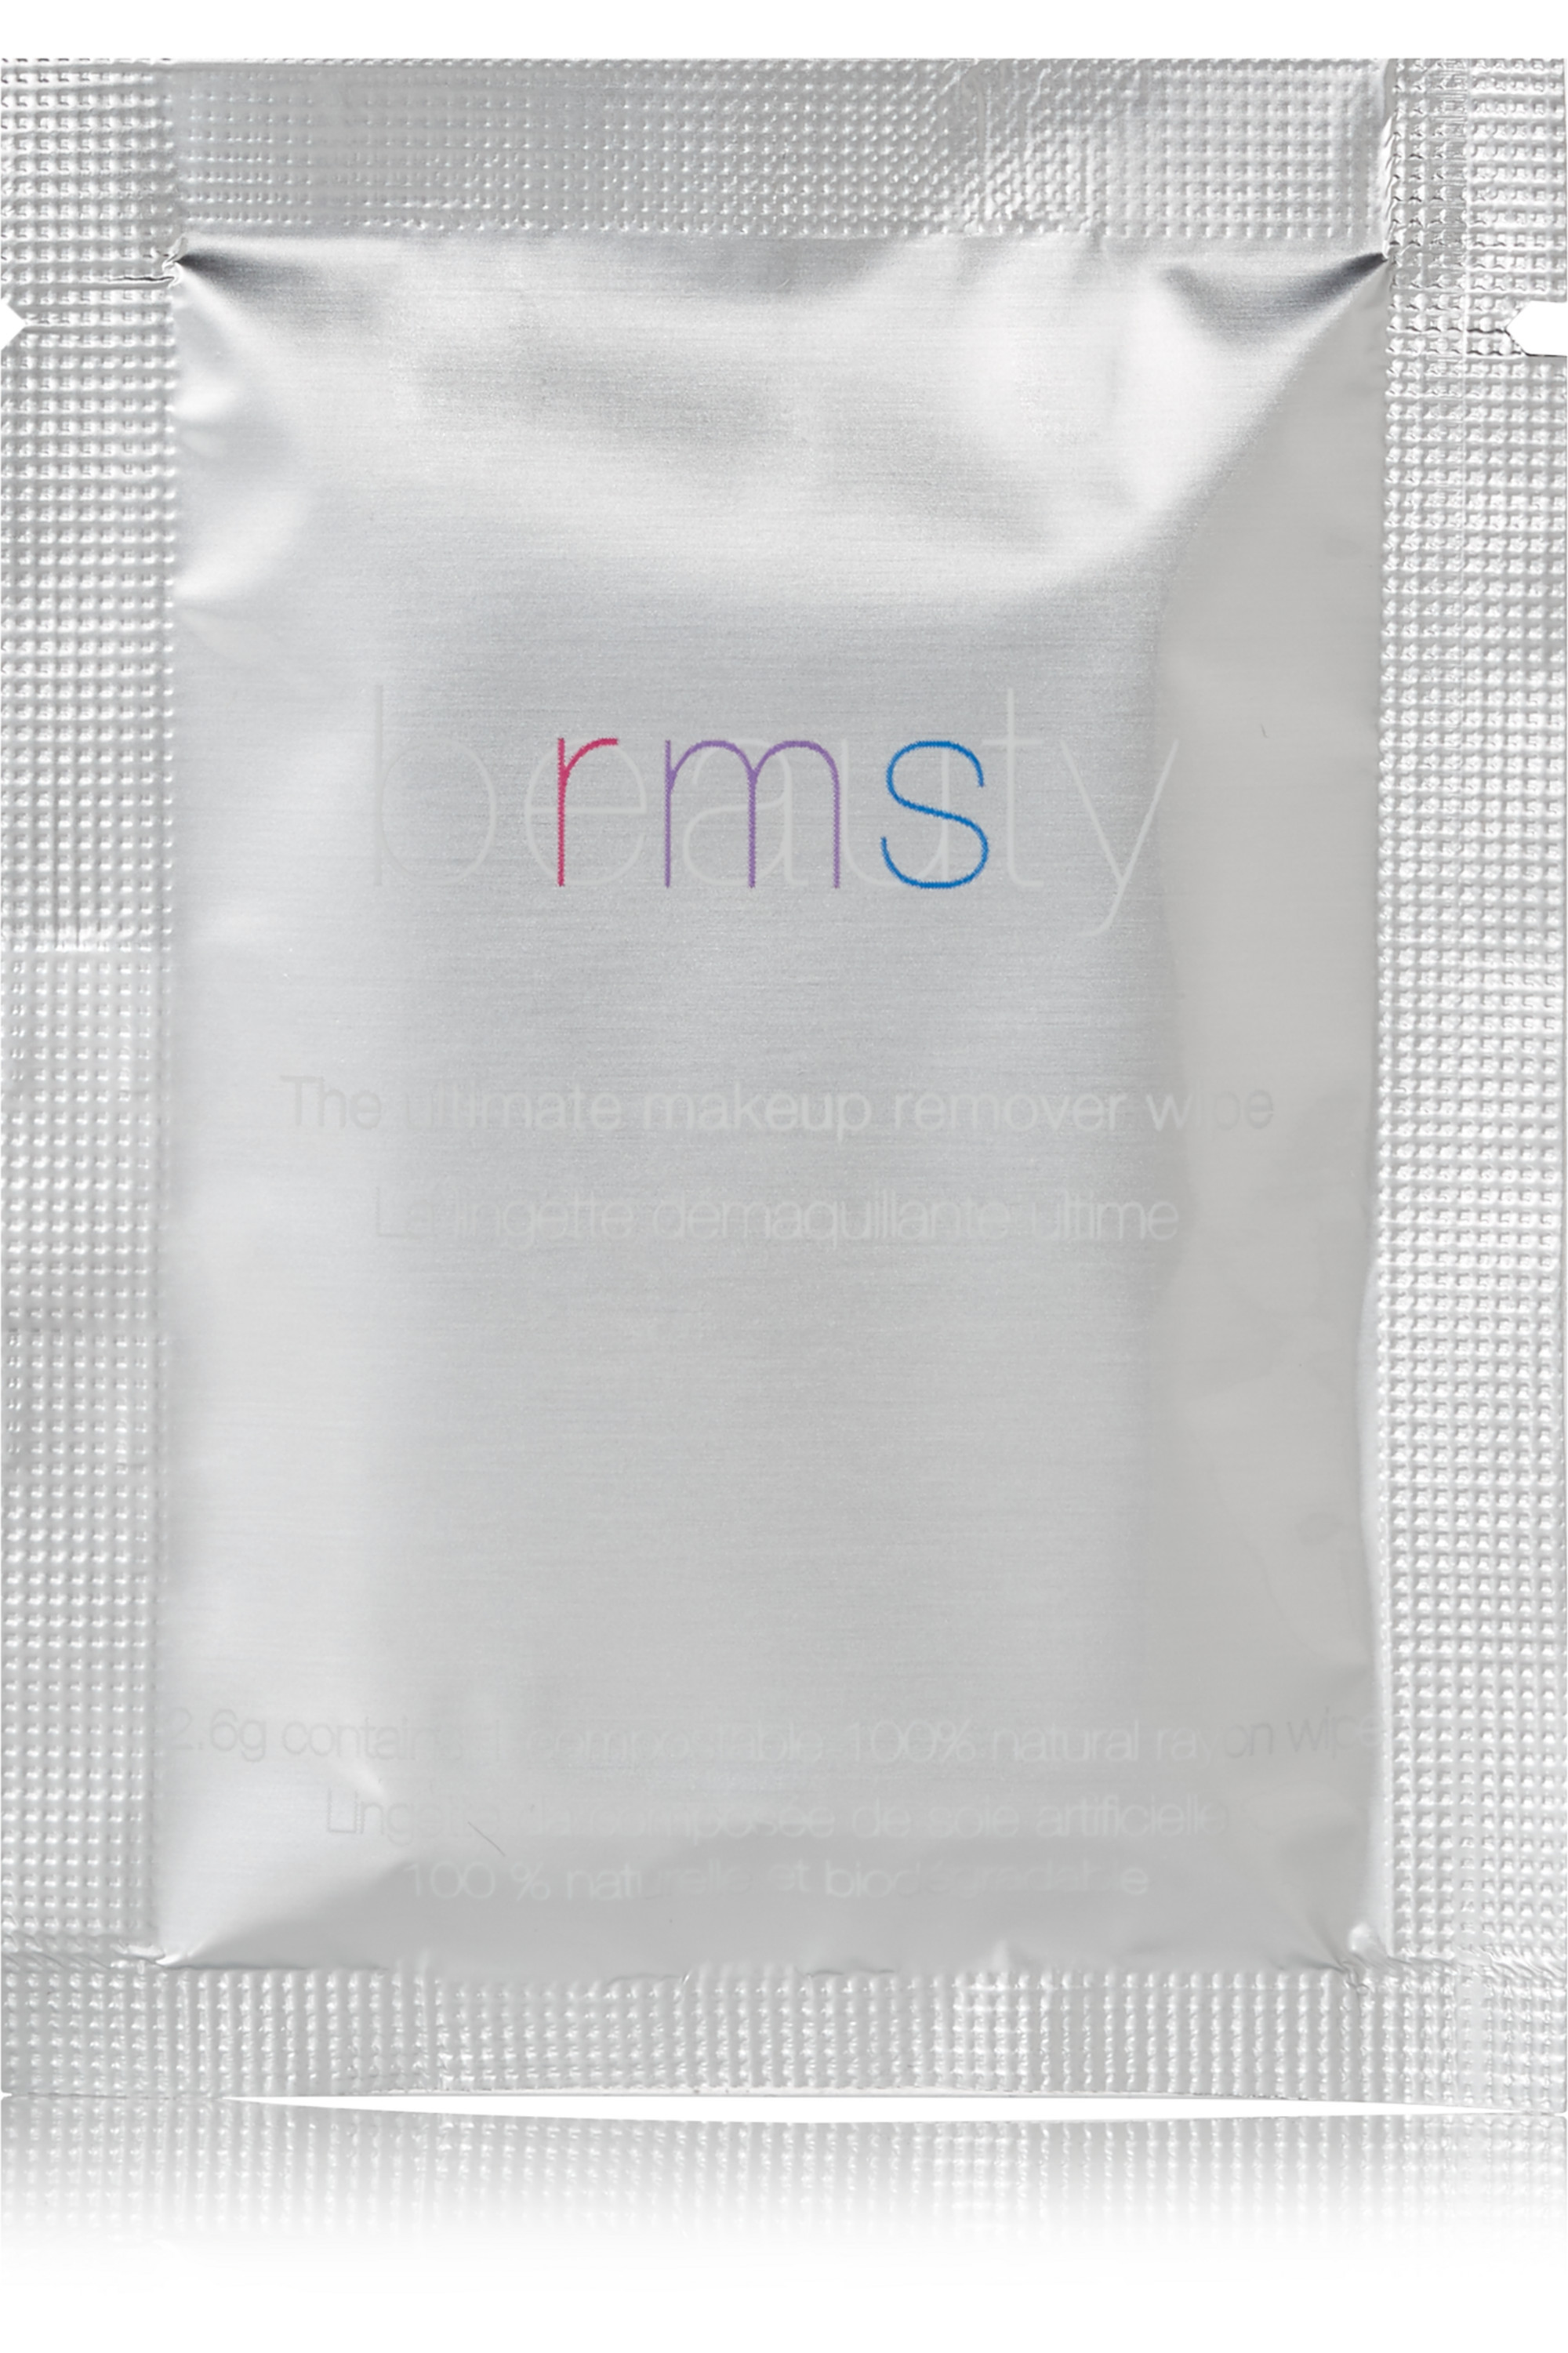 RMS Beauty The Ultimate Makeup Remover Wipes x 20